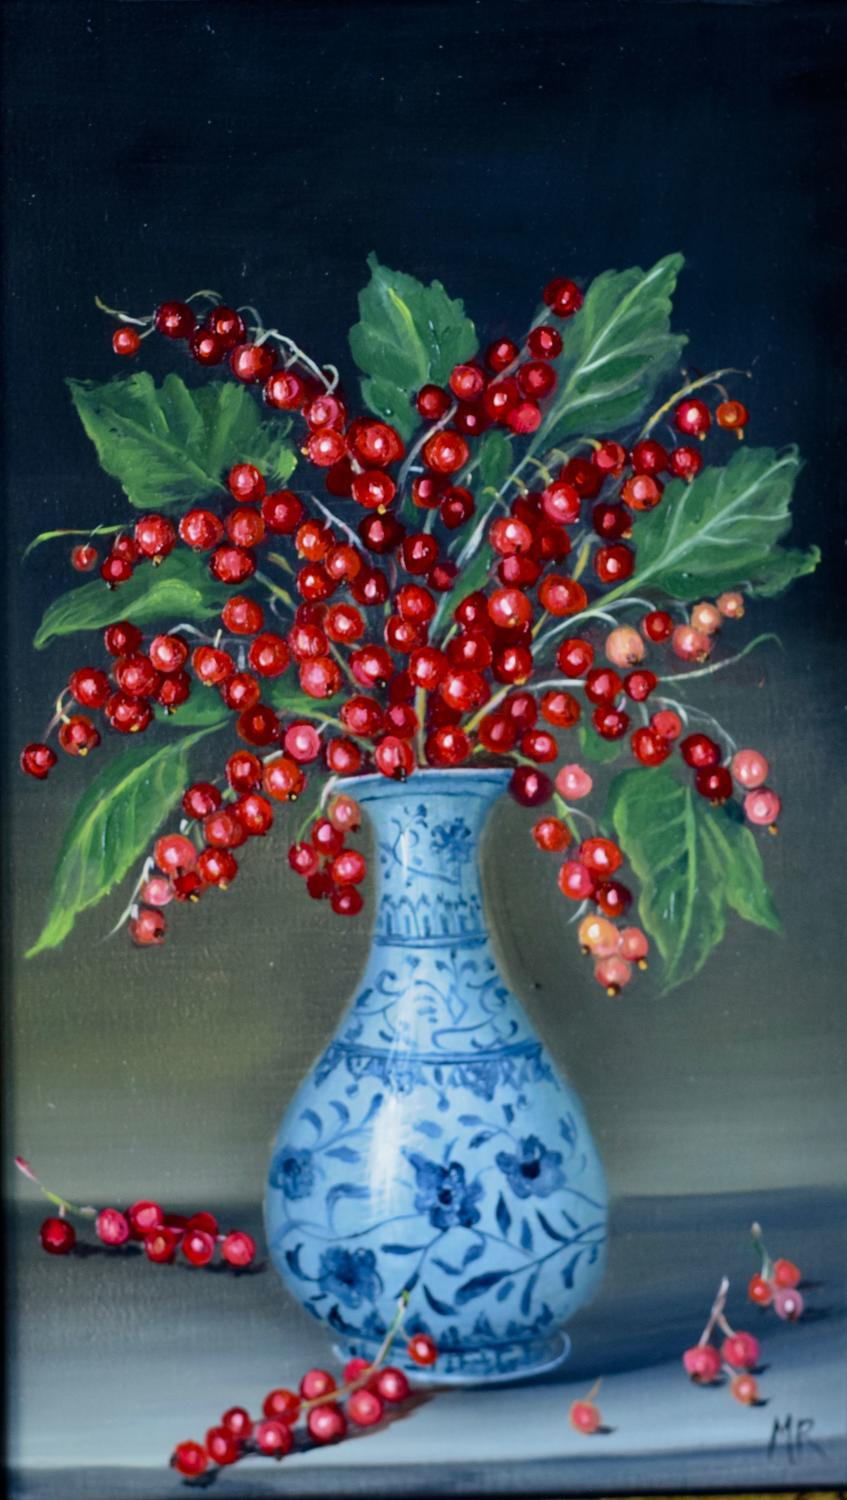 Vase of Red Currants